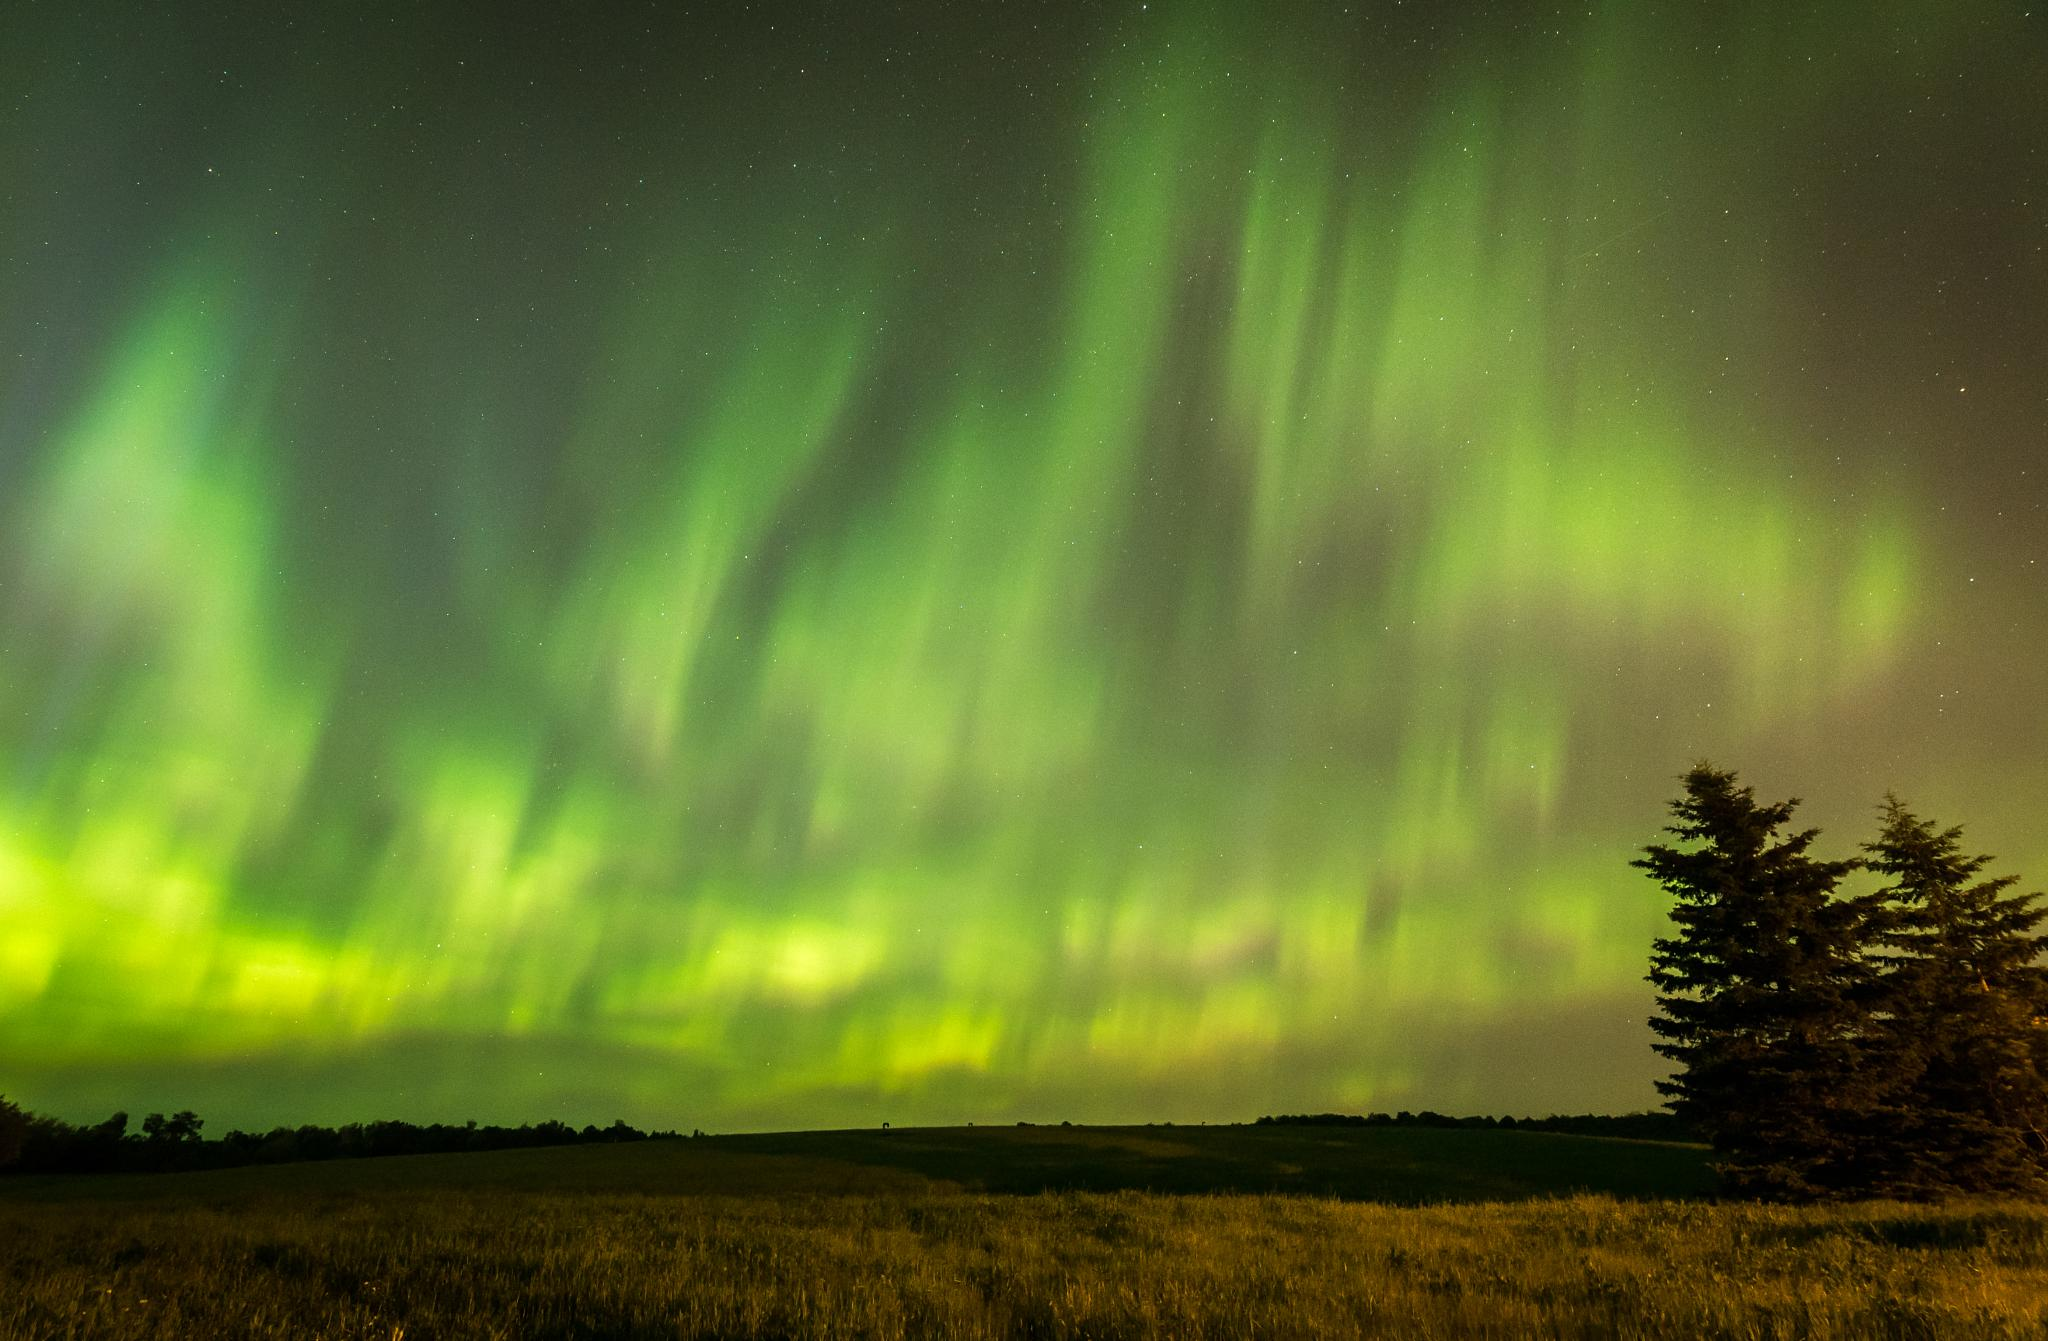 Northern Lights field on Fire by john.strongitharm